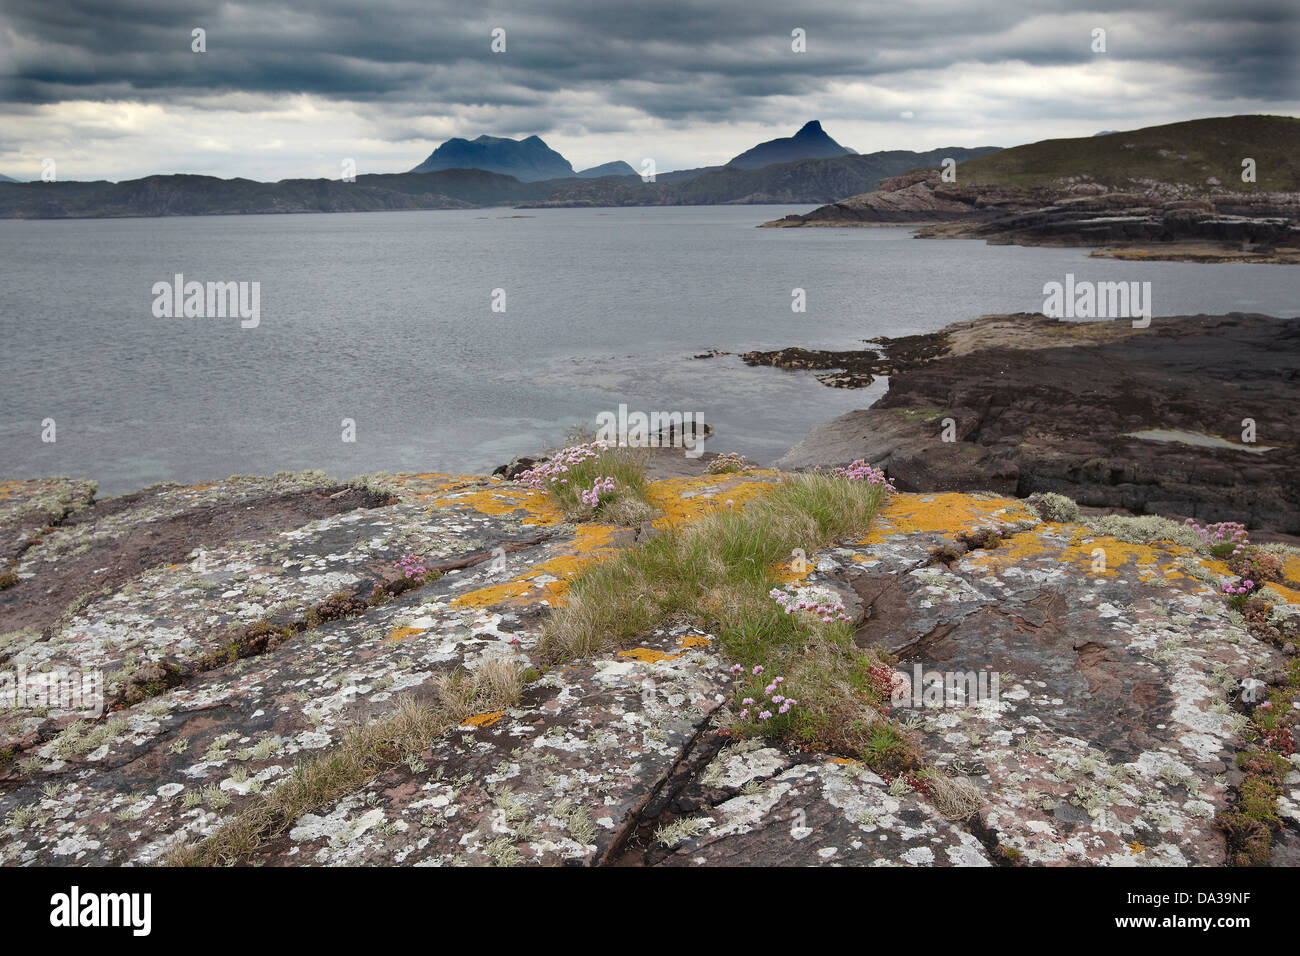 Rocks covered in Thrift and lichen under a dramatic sky on the shoreline of Enard Bay, Sutherland, North West, Scotland, Stock Photo